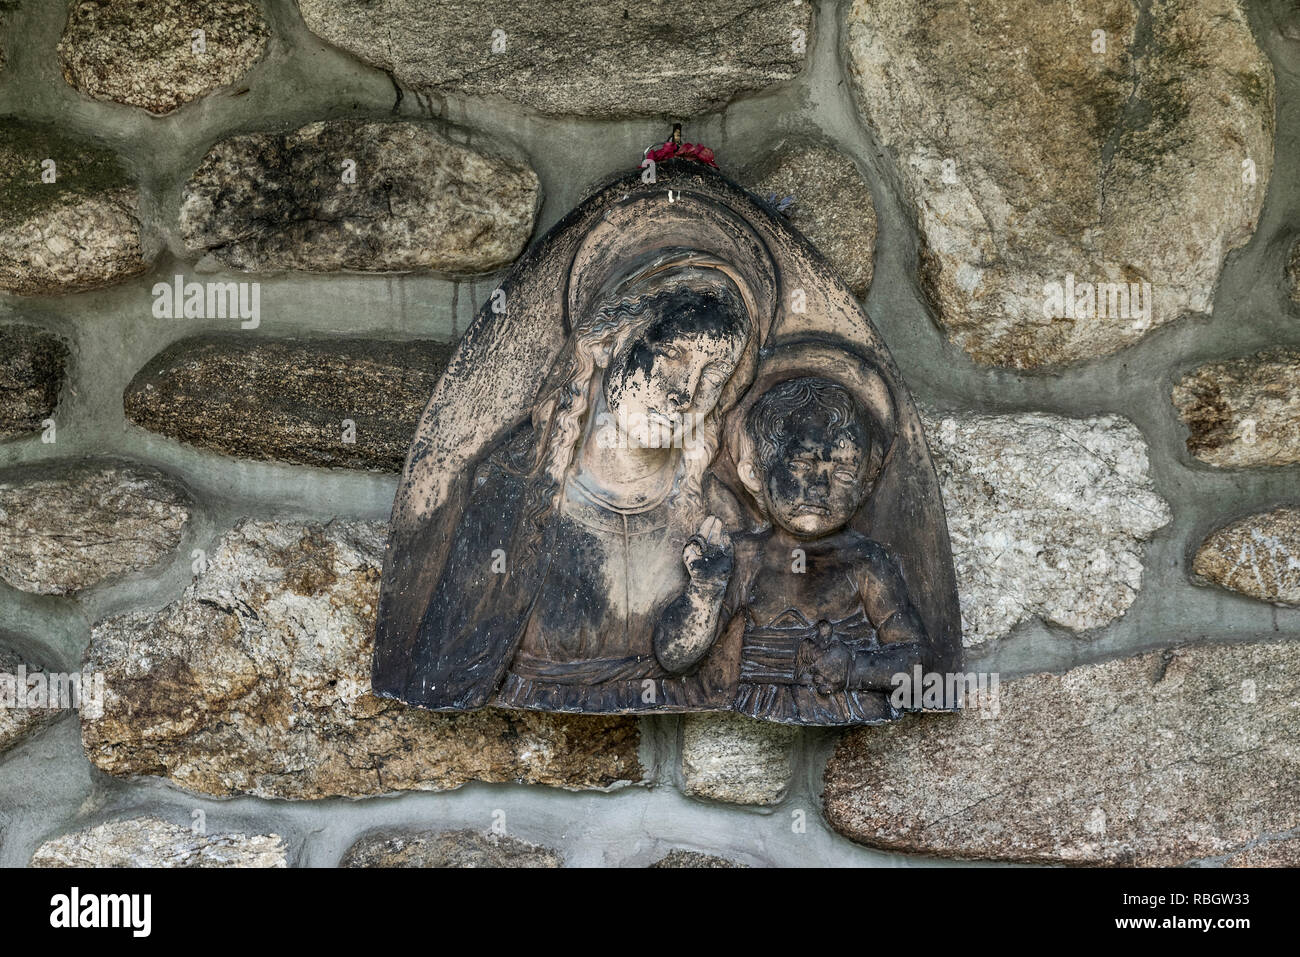 Madonna and child carving against the fieldstone wall of a monastic church, St Joesph Trappist Abbey, Spencer, Massachusetts, USA. - Stock Image